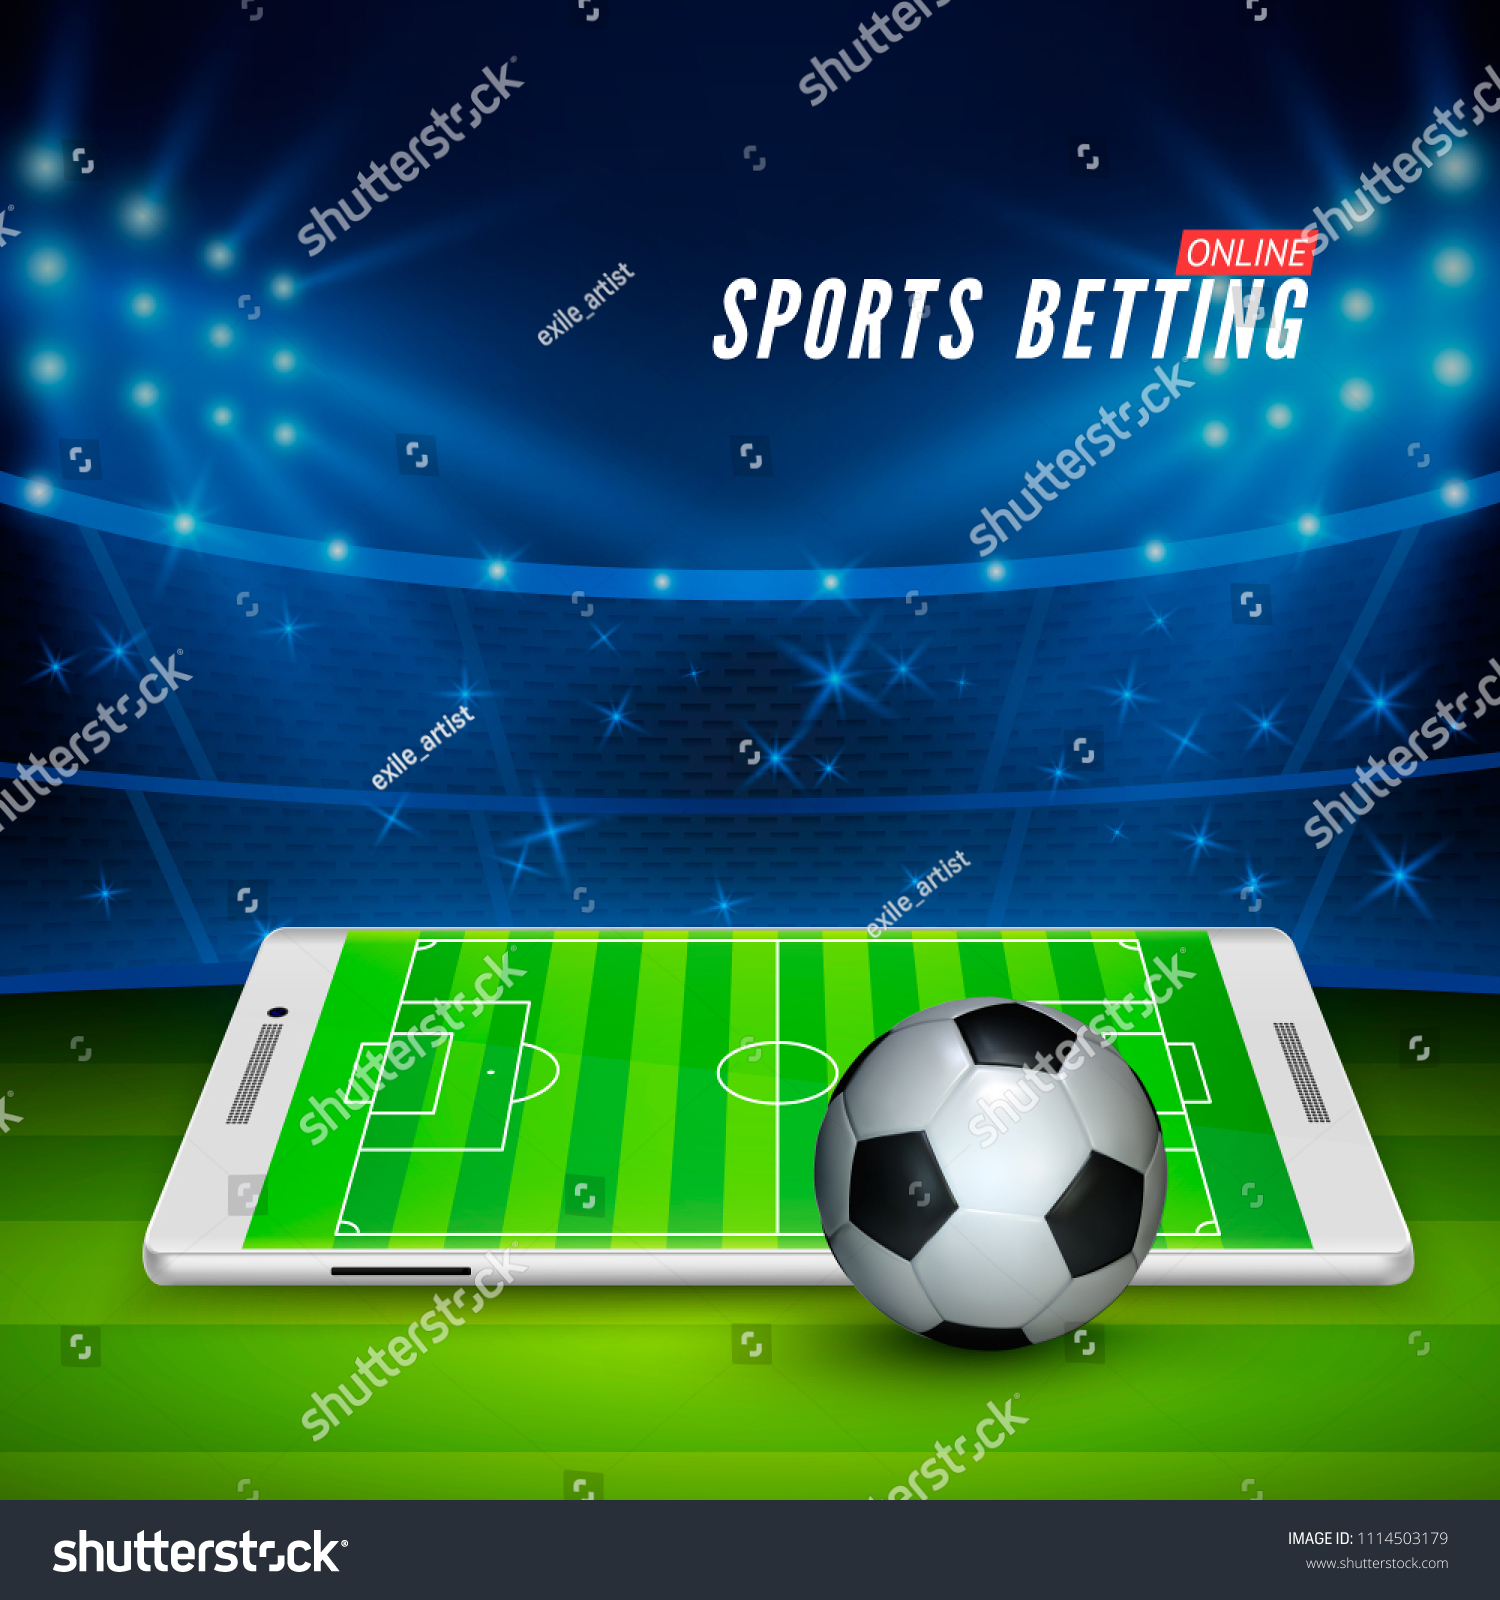 Soccer Bet Online Sports Betting Concept Stock Vector (Royalty Free)  1114503179